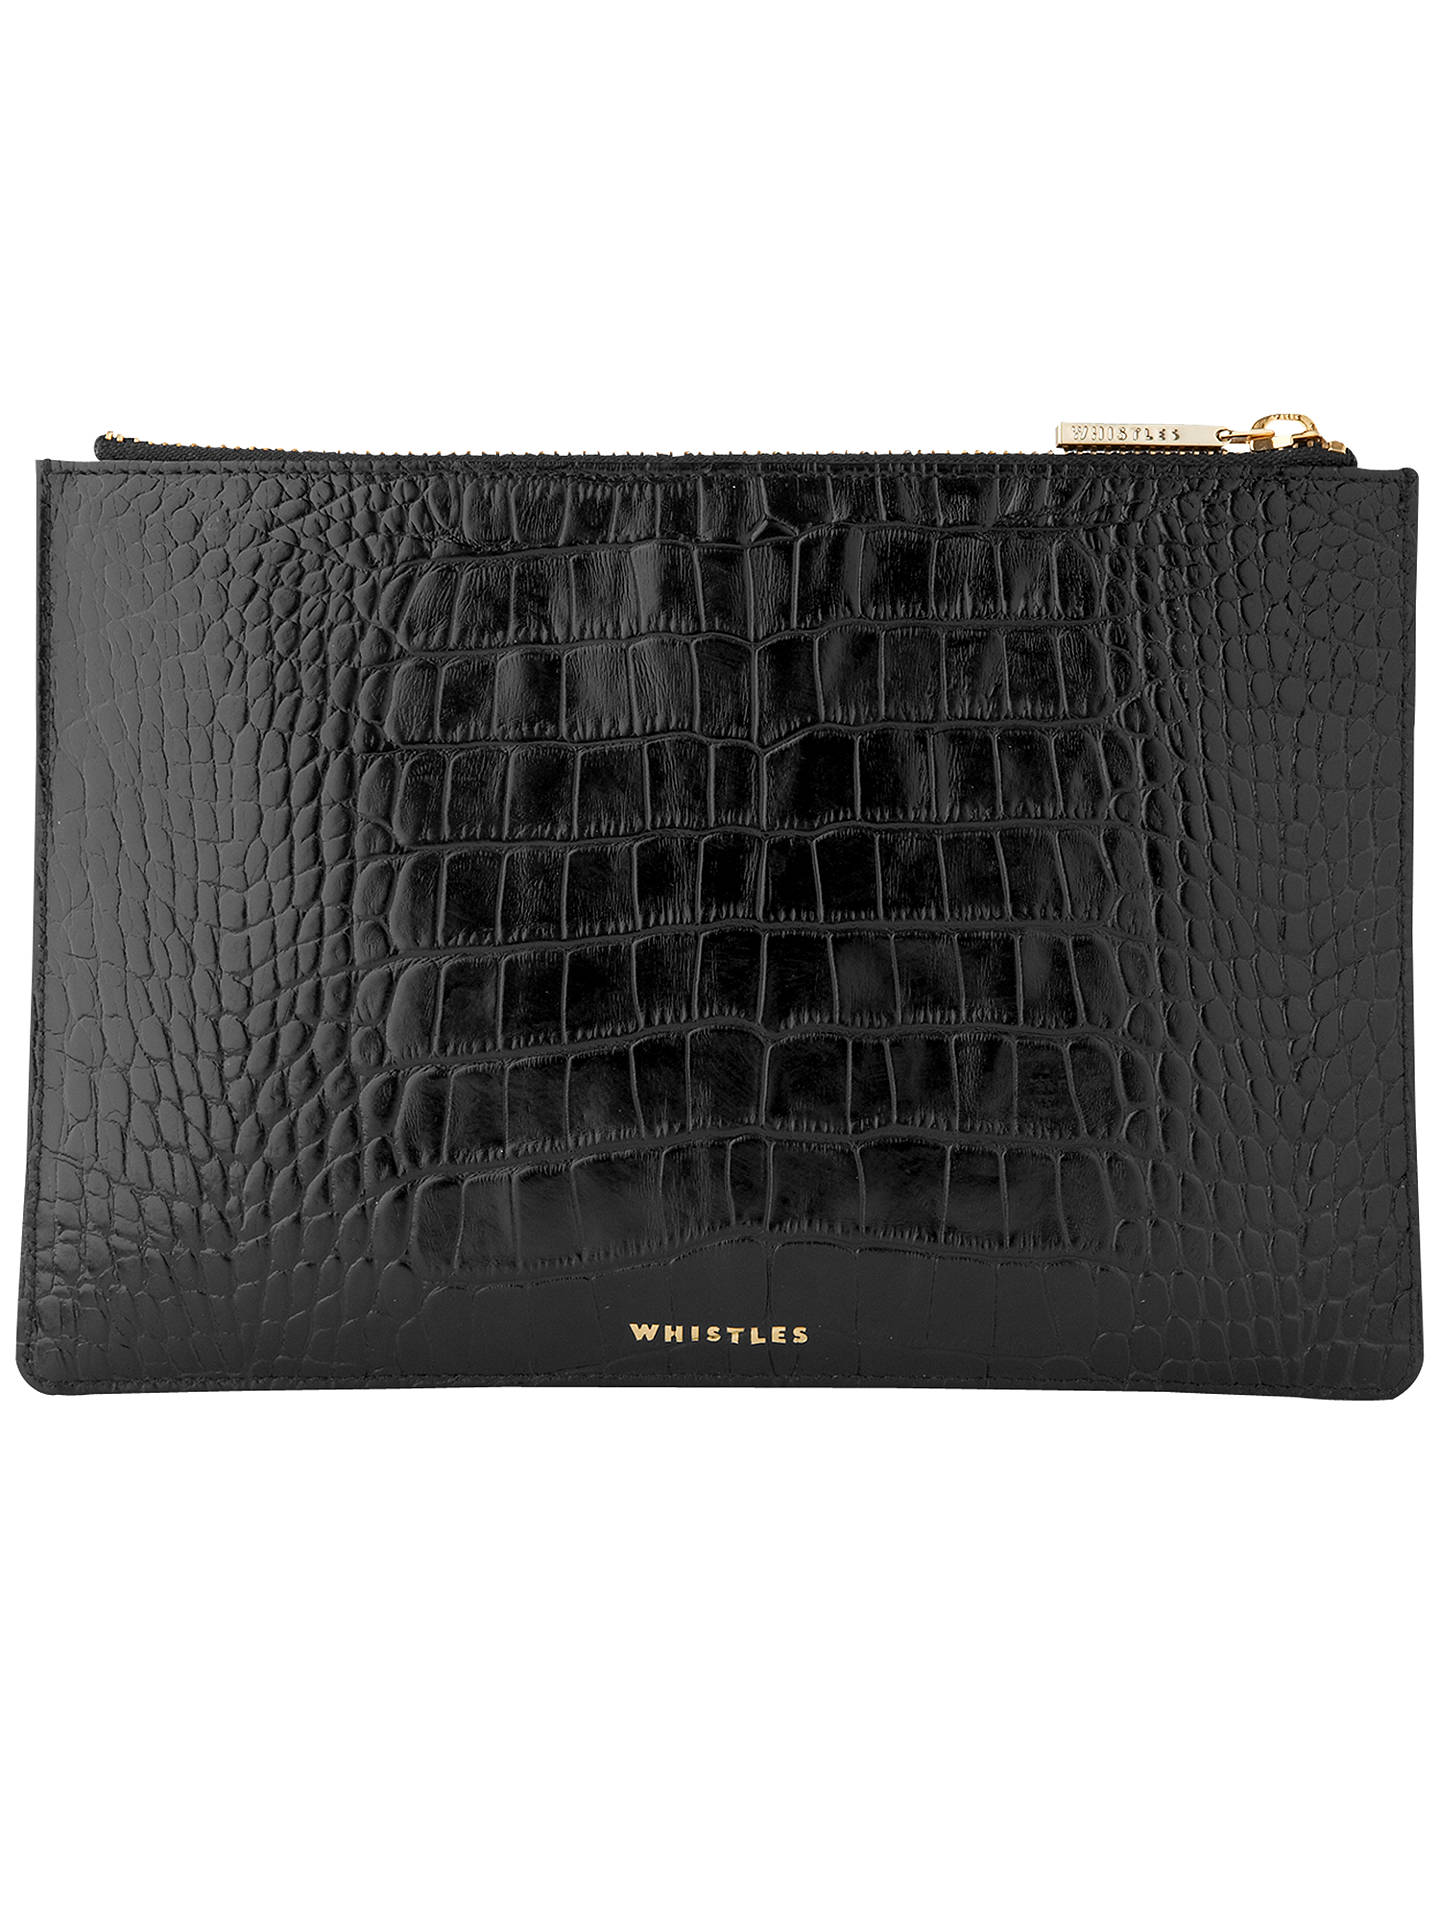 1a56731298 Buy Whistles Shiny Croc Leather Small Clutch Bag, Black Online at  johnlewis.com ...